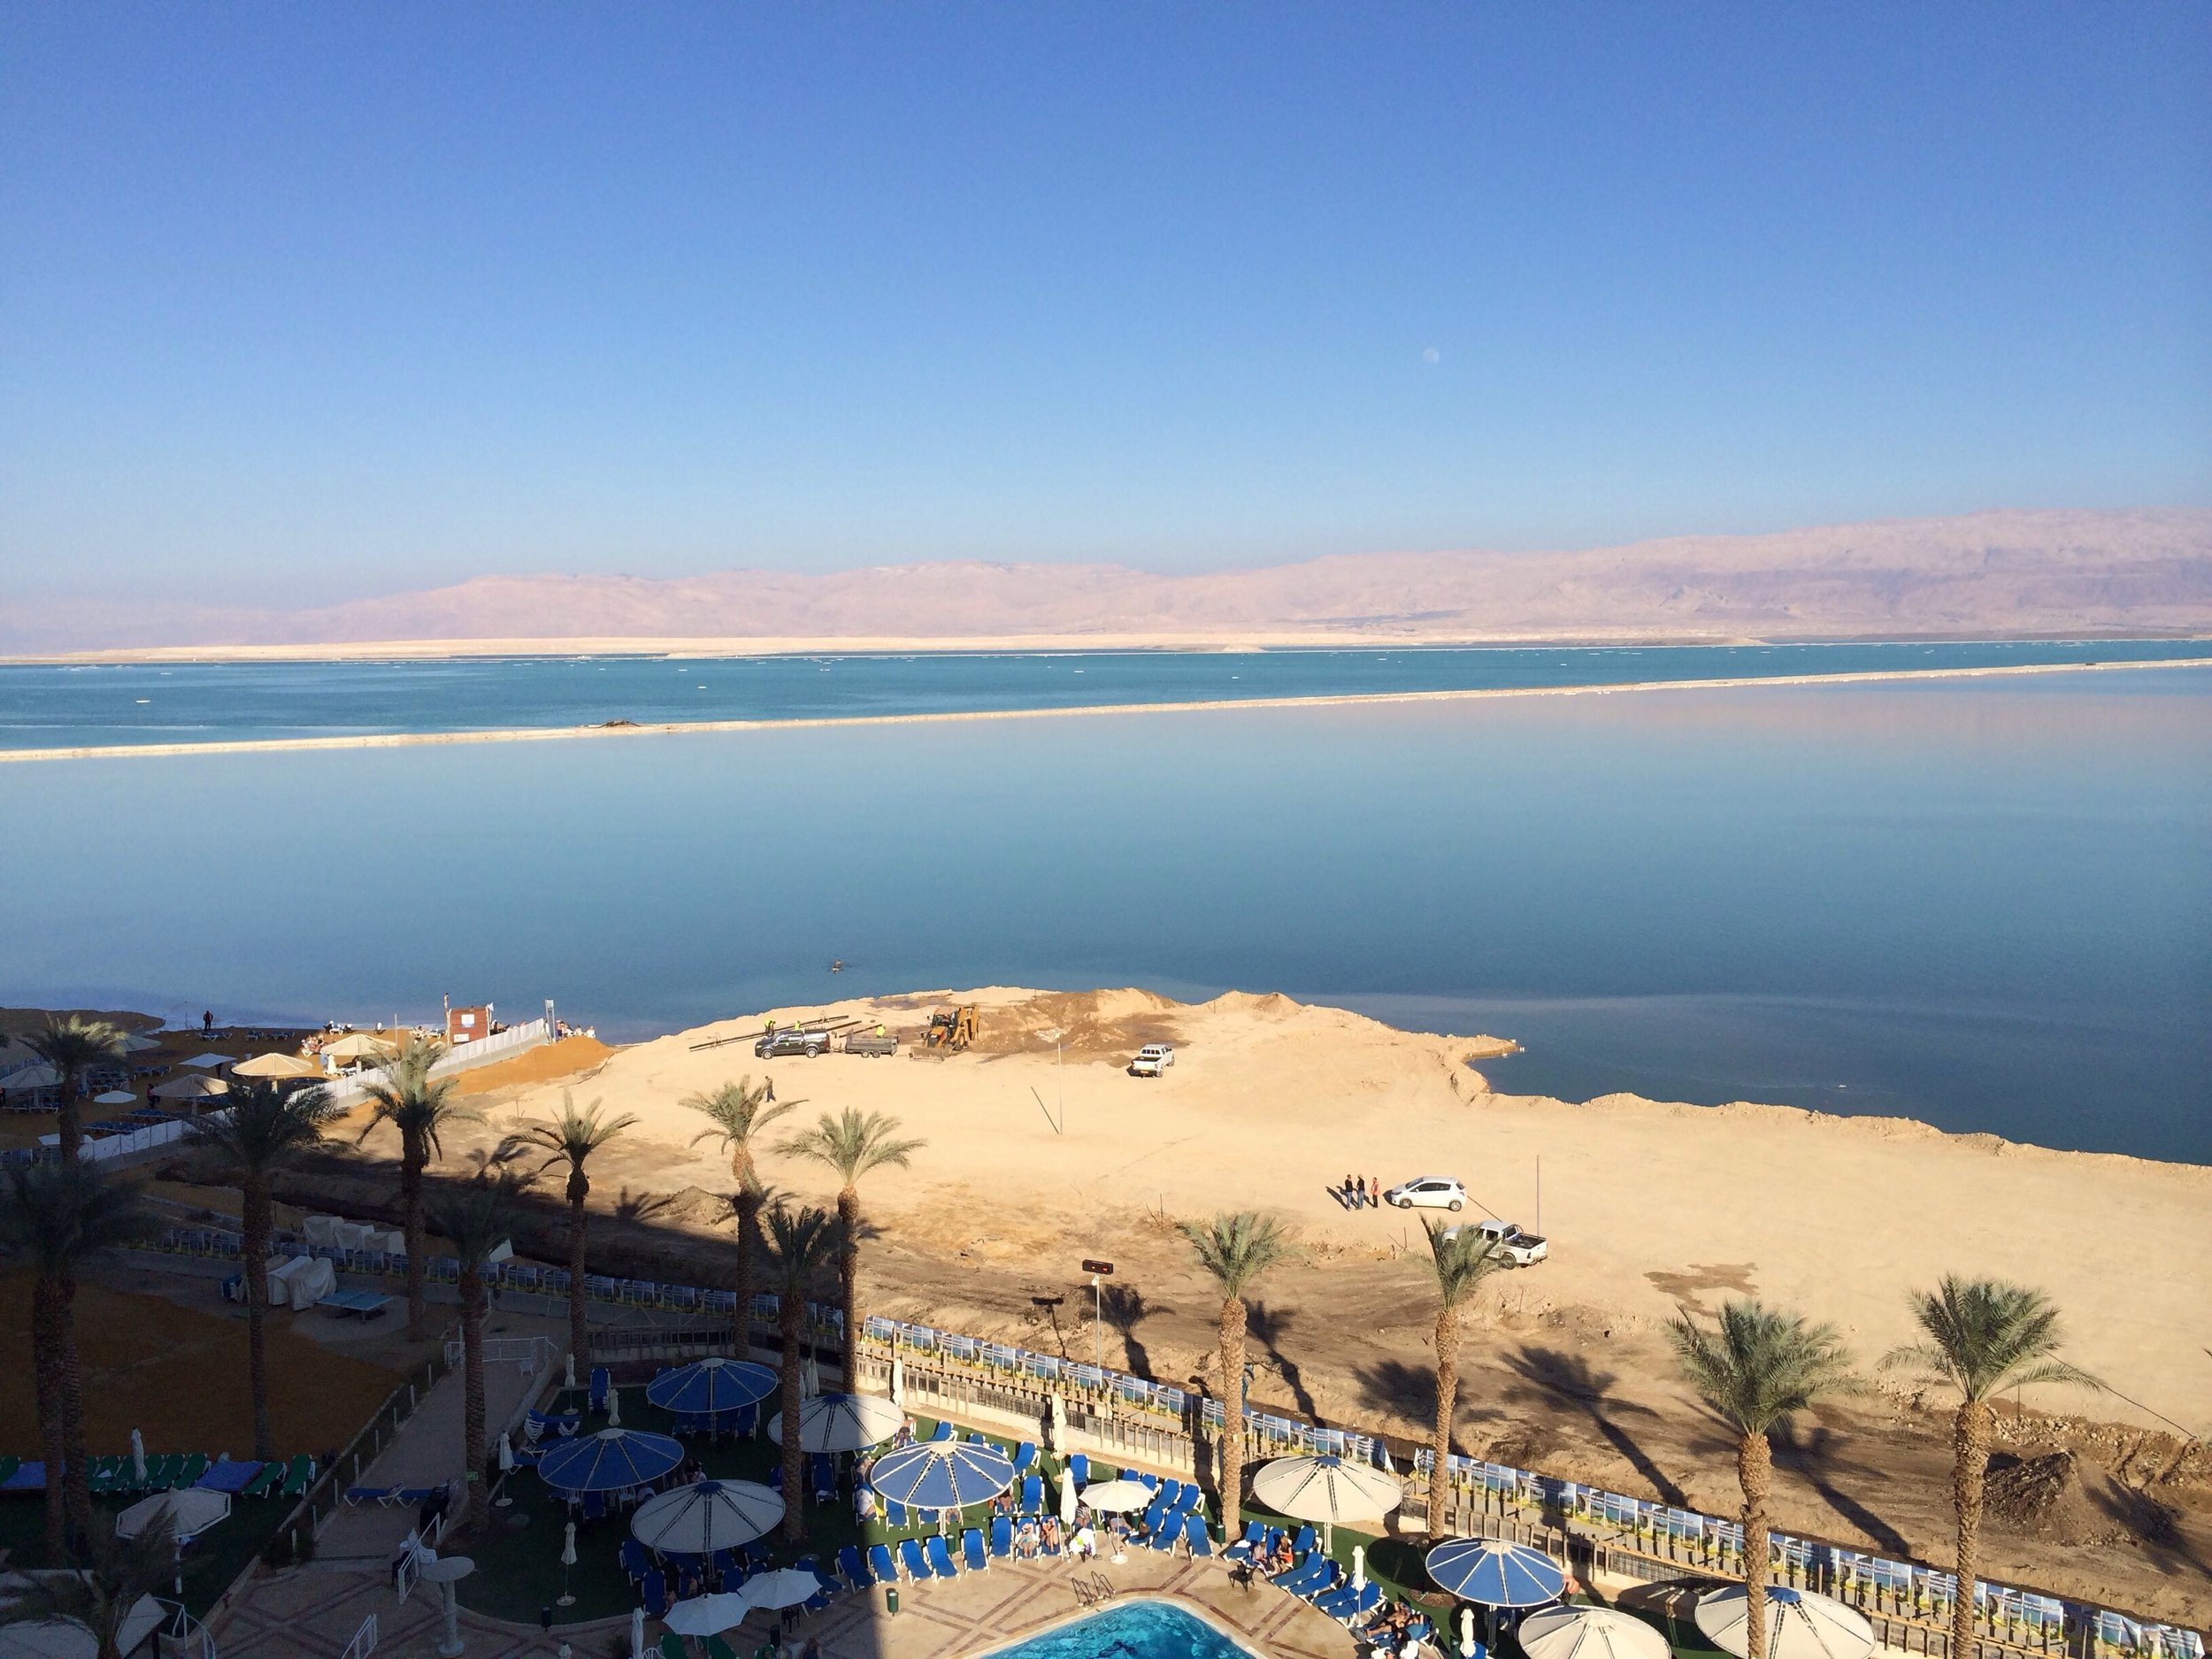 View of the Dead Sea from my trip with Beau, Urvi and Heeral